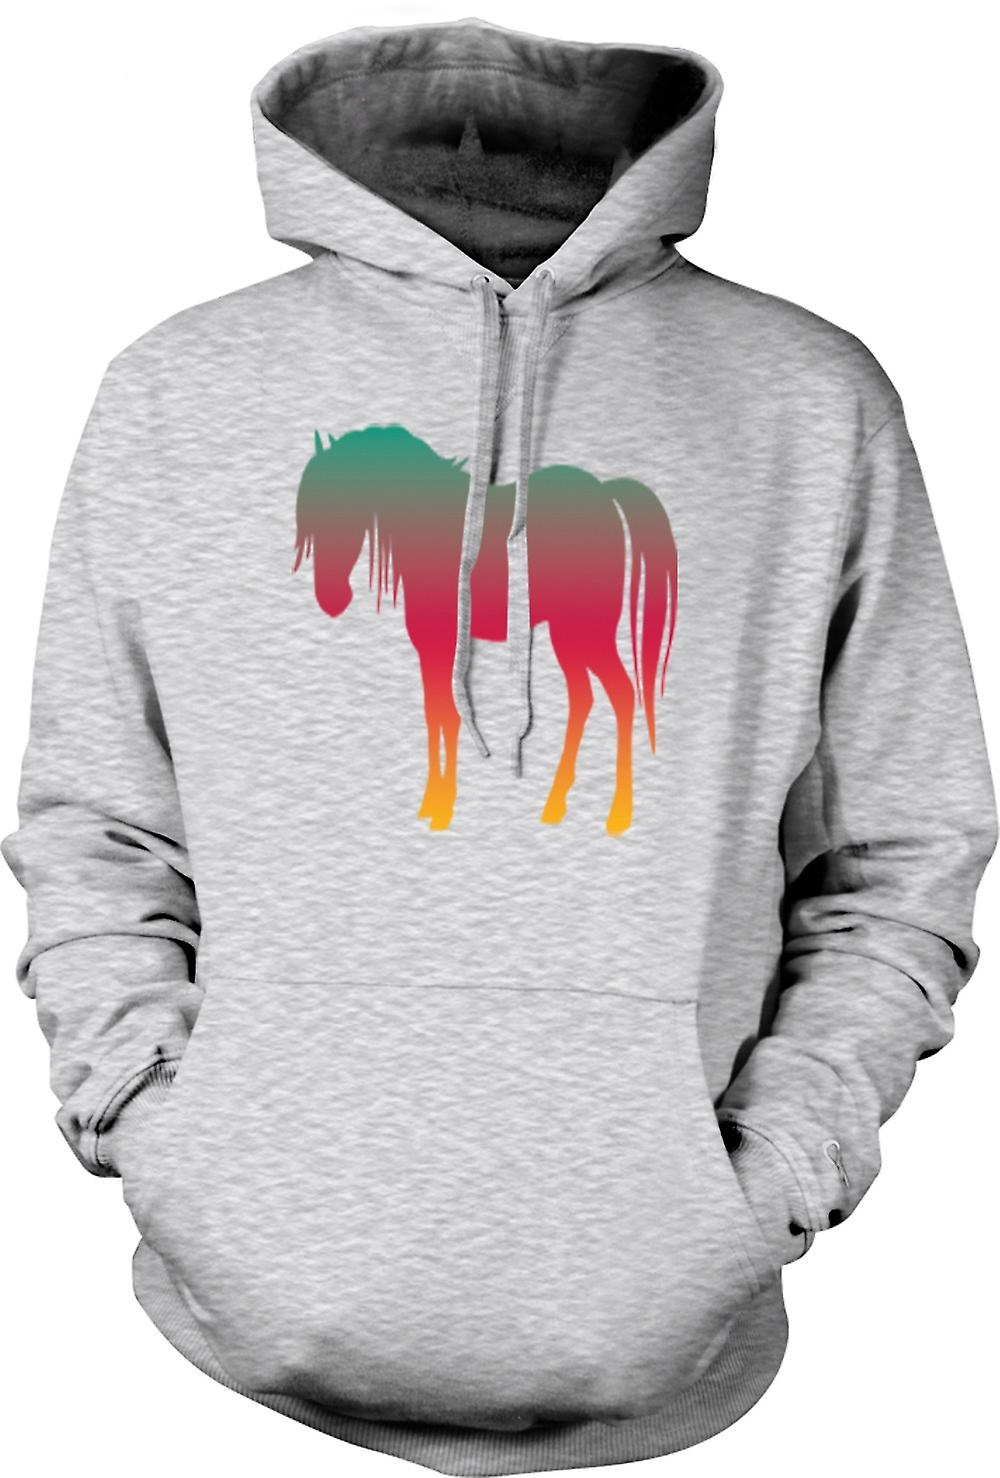 Mens Hoodie - Rainbow Design Cheval psychédélique